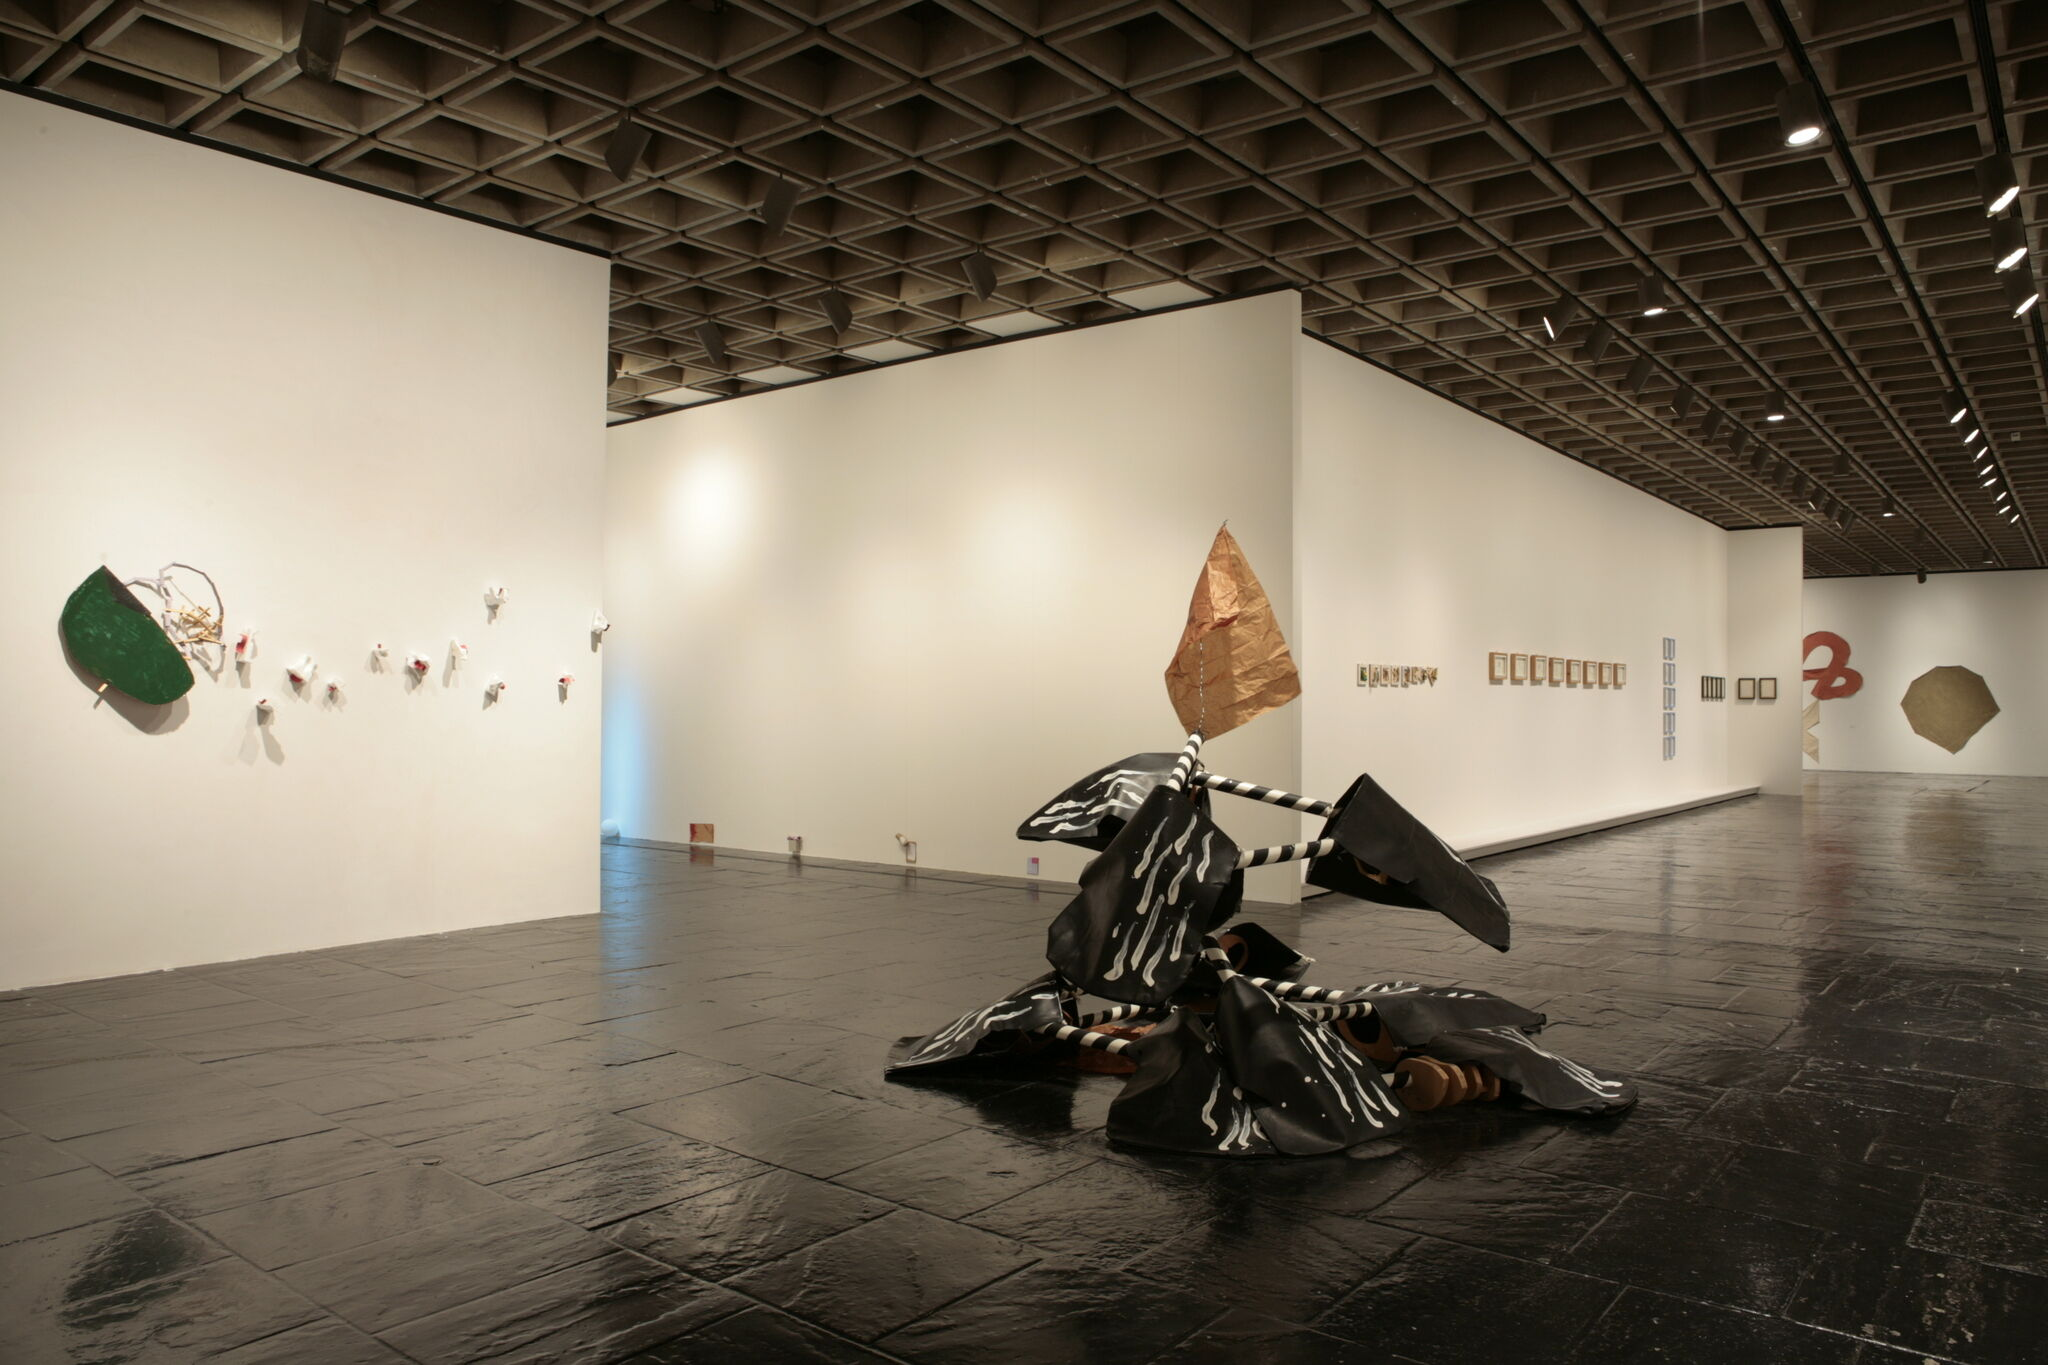 A gallery filled with various works of art, including sculptures and prints.